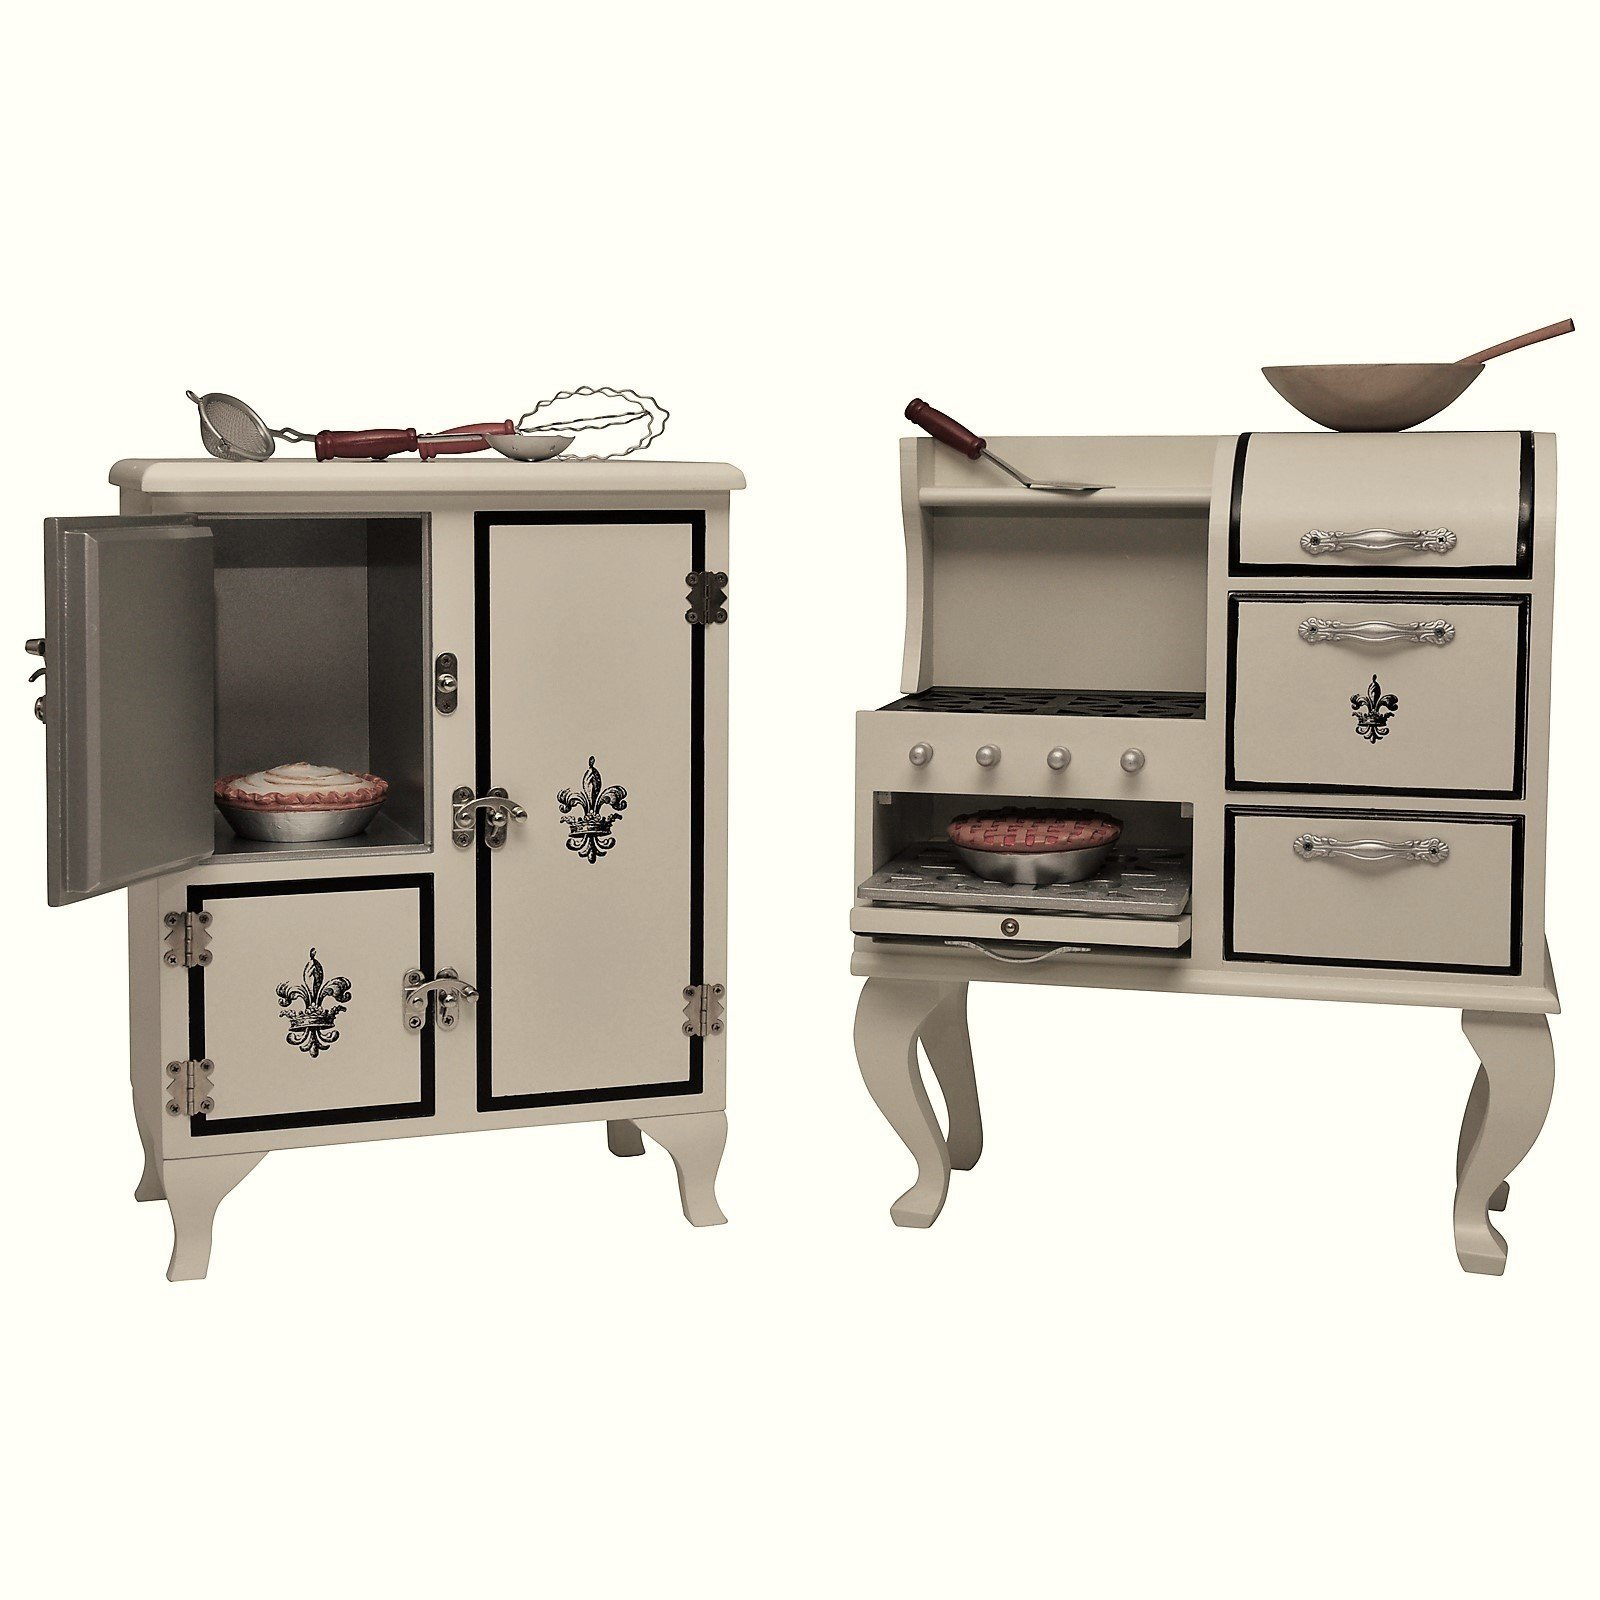 The Queen's Treasures American Vintage Stove & Fridge Wooden Furniture +Kitchen Tool & Food Accessory Play Set for 18 Inch Girl Dolls